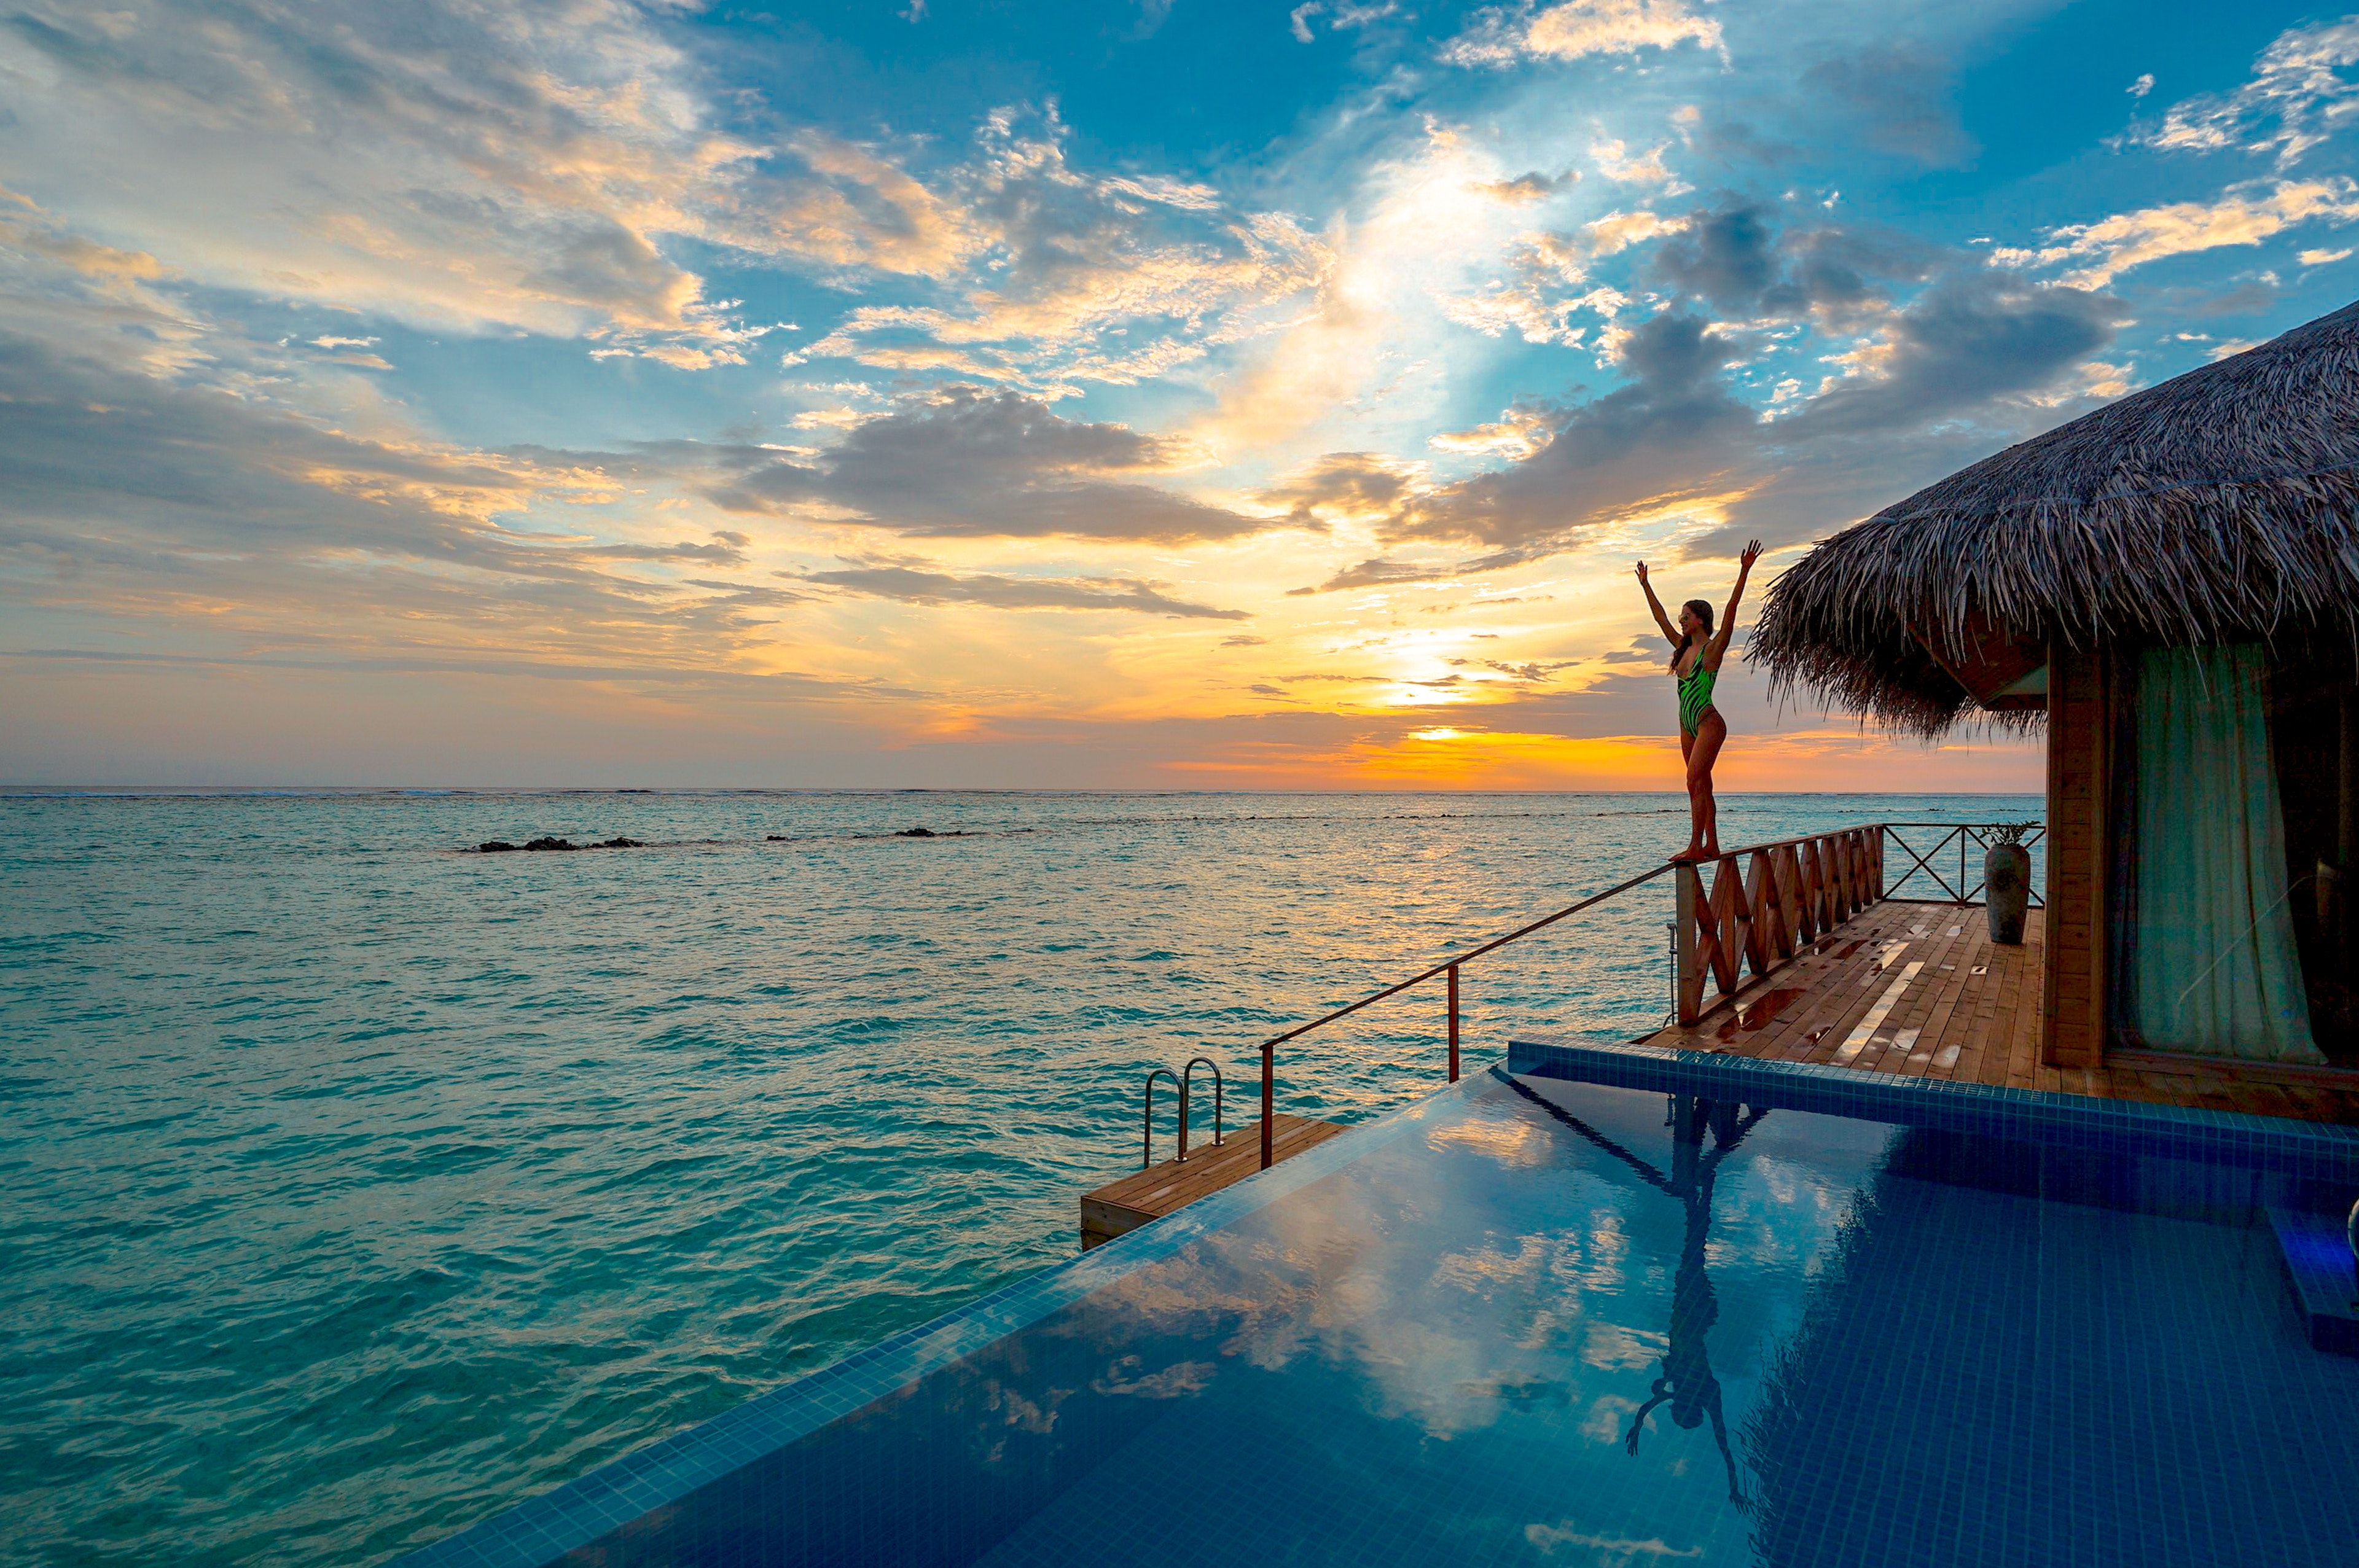 infinity-pool-near-beach-3155666